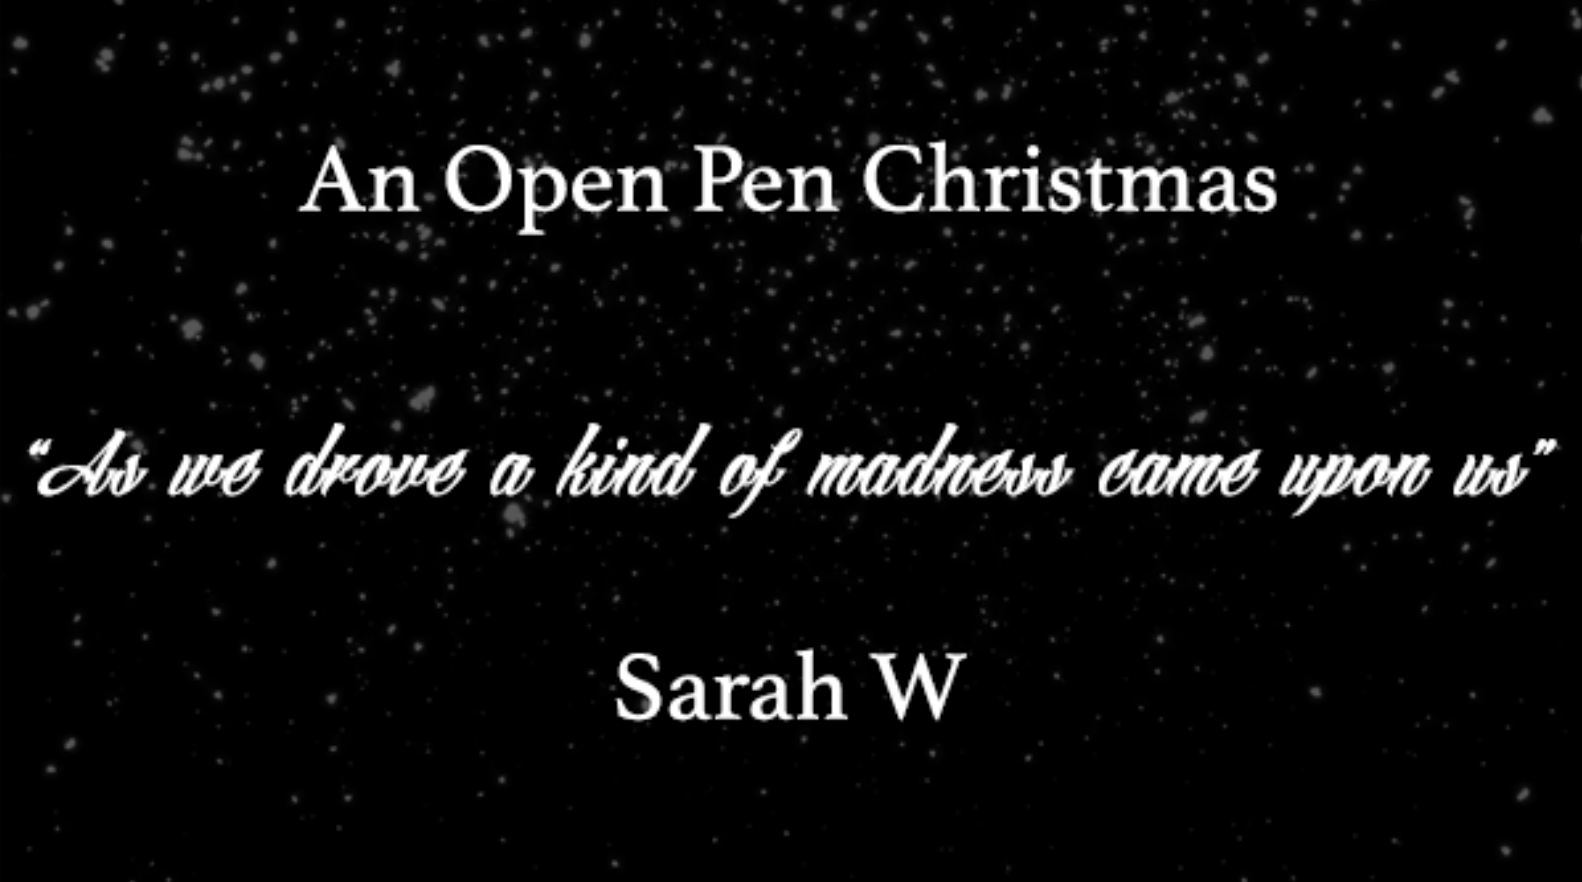 AN OPEN PEN CHRISTMAS: As we drove a kind of madness came upon us